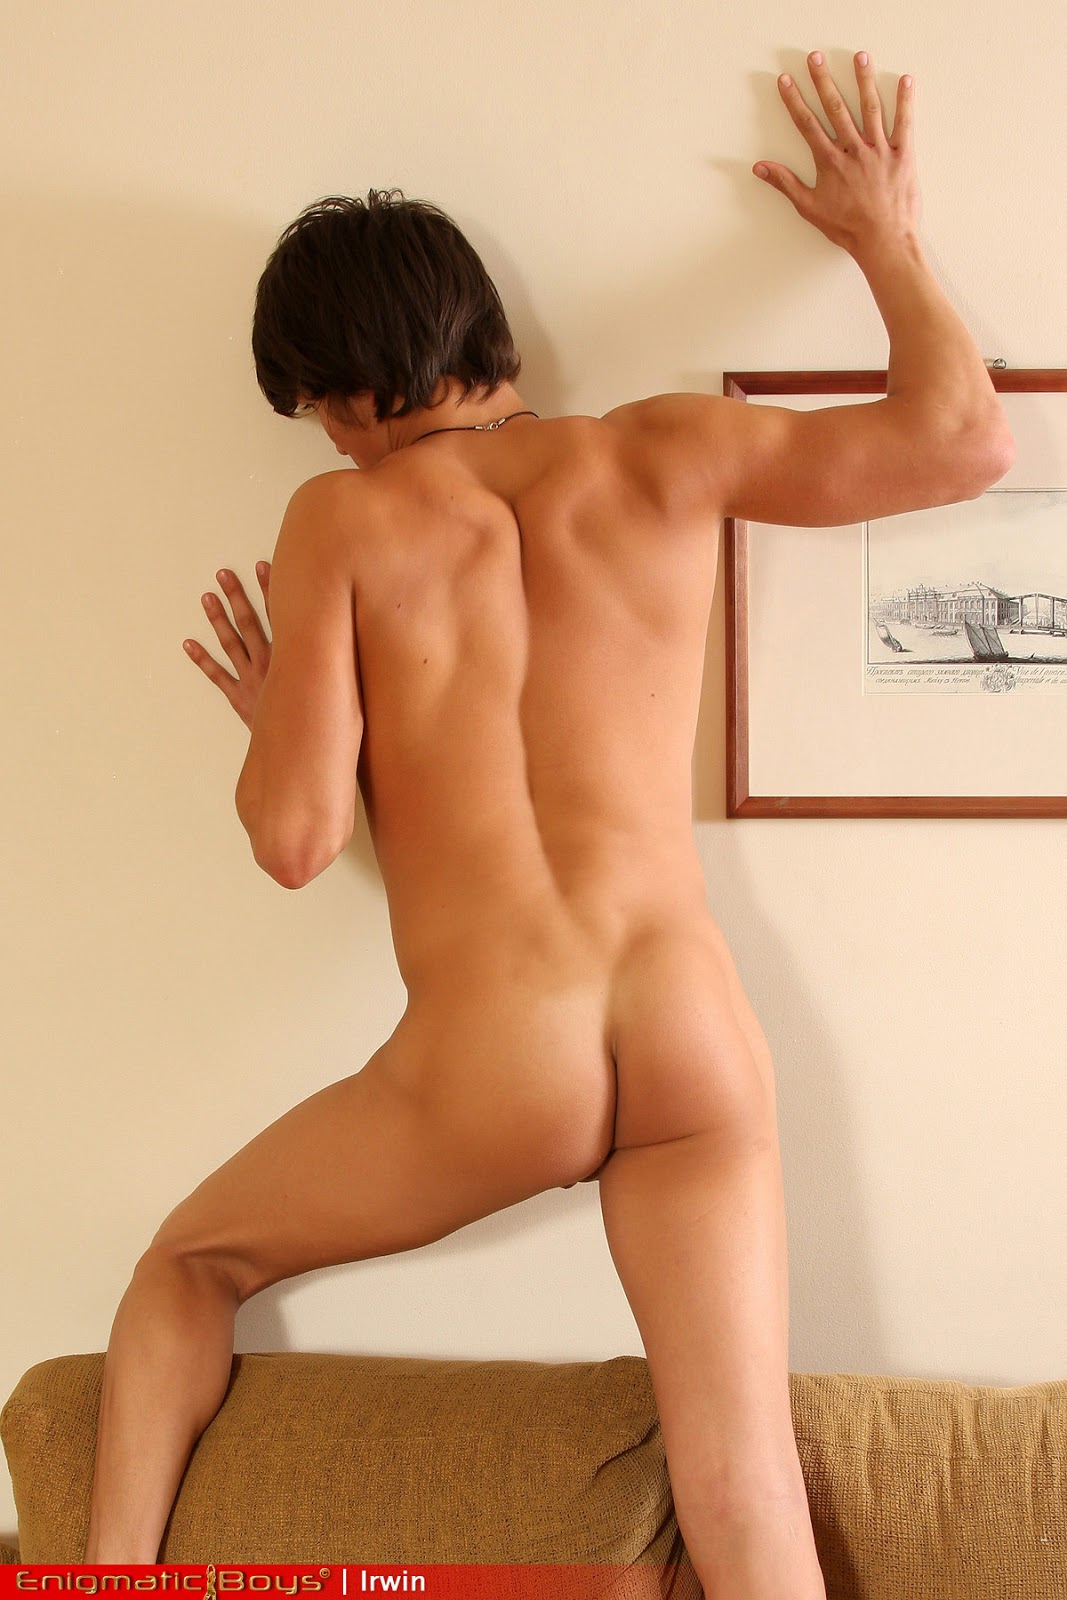 highest rated gay video sites